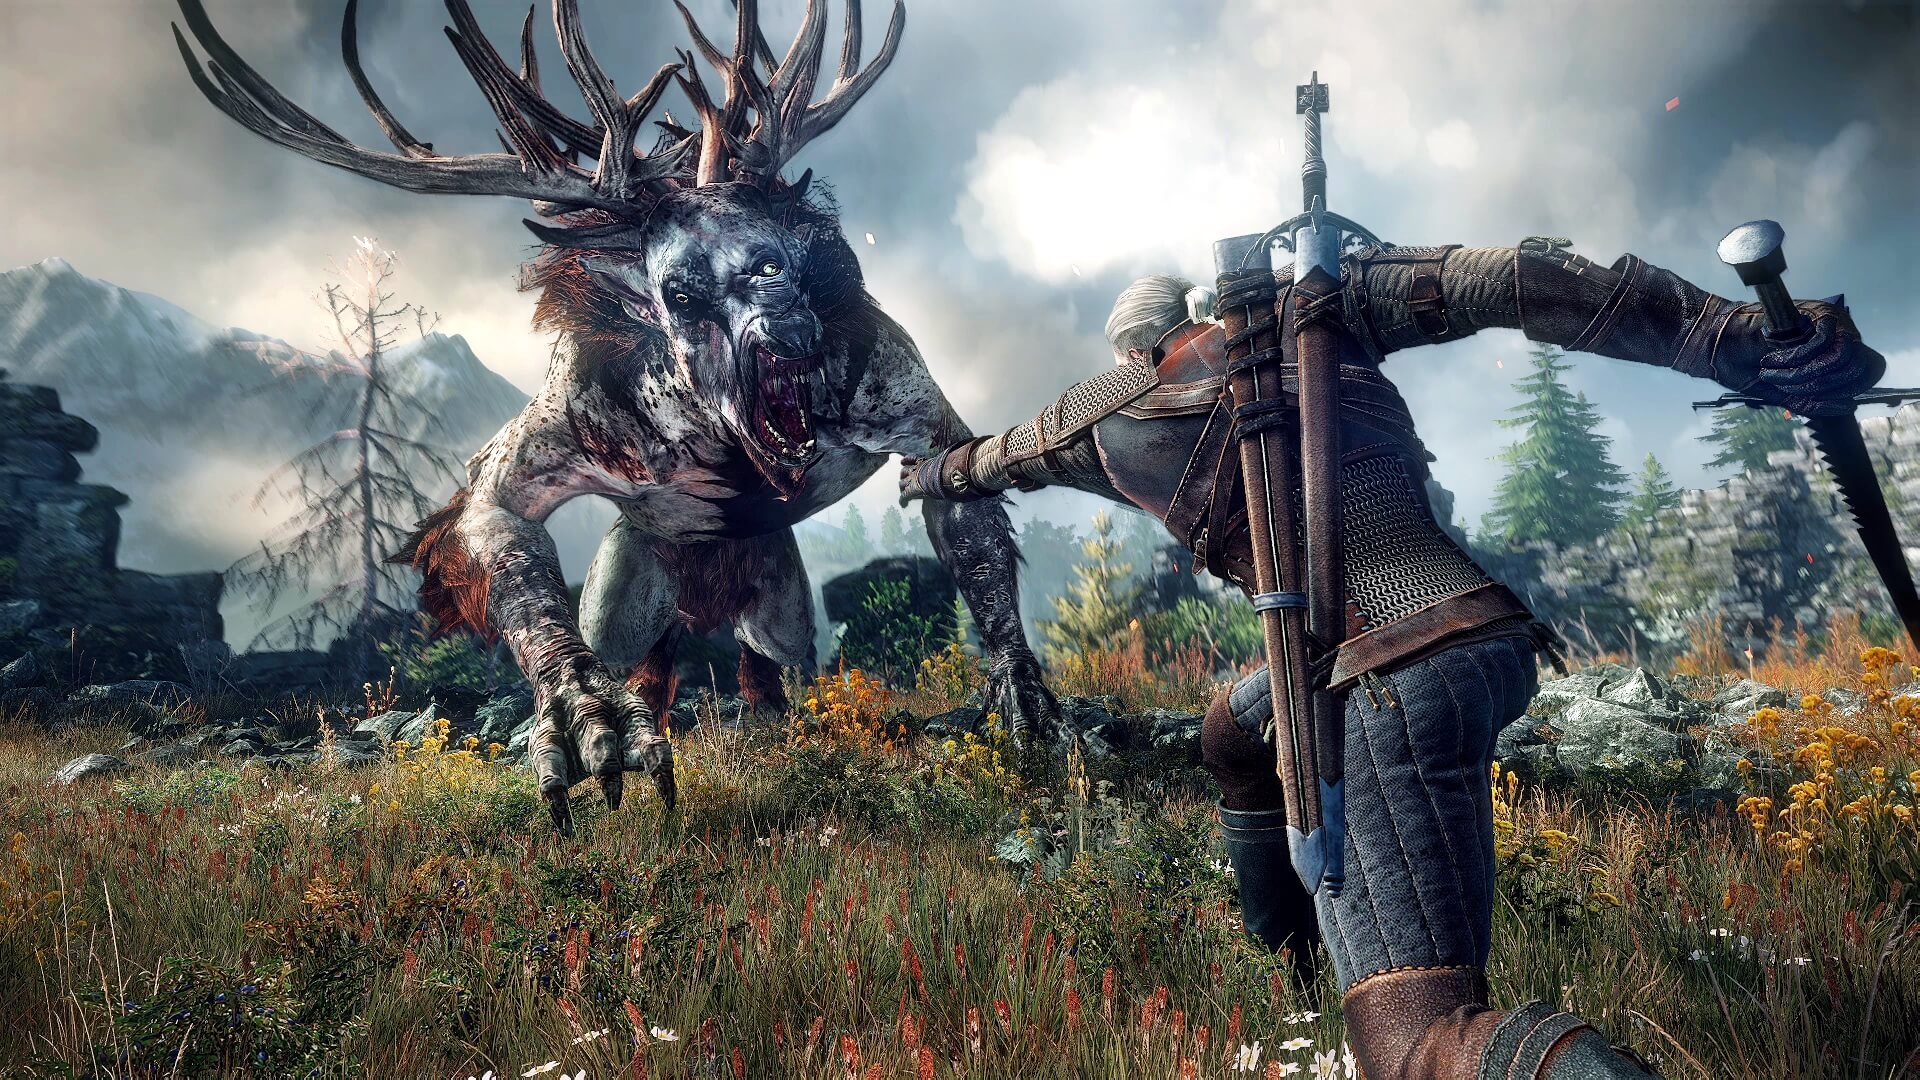 'The Witcher 3' Preview: Next-Gen Starts Here